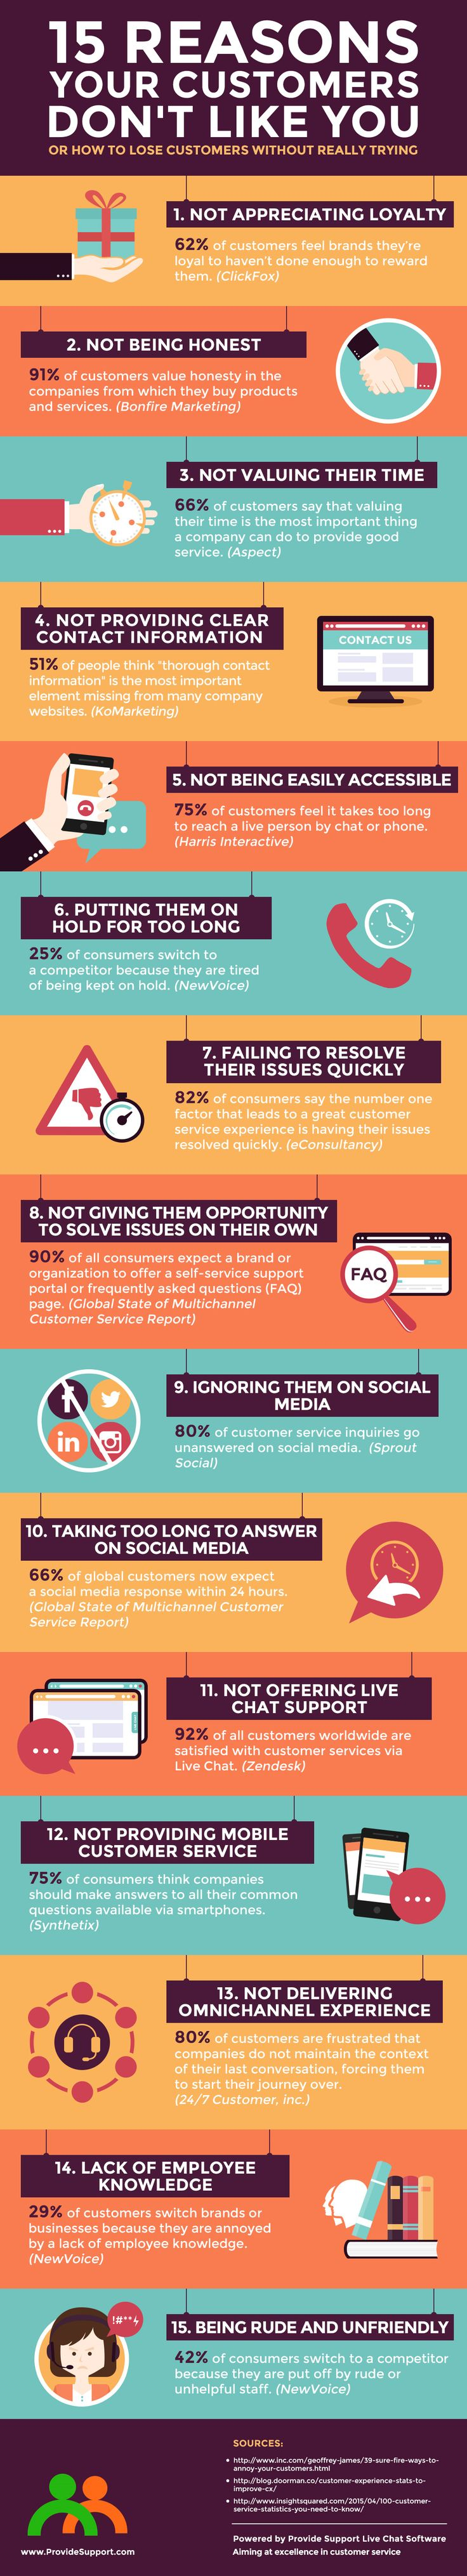 15 Reasons Your Customers Don't Like You (Infographic): http://www.providesupport.com/blog/15-reasons-your-customers-dont-like-you-infographic/ #customerservice #customerexperience